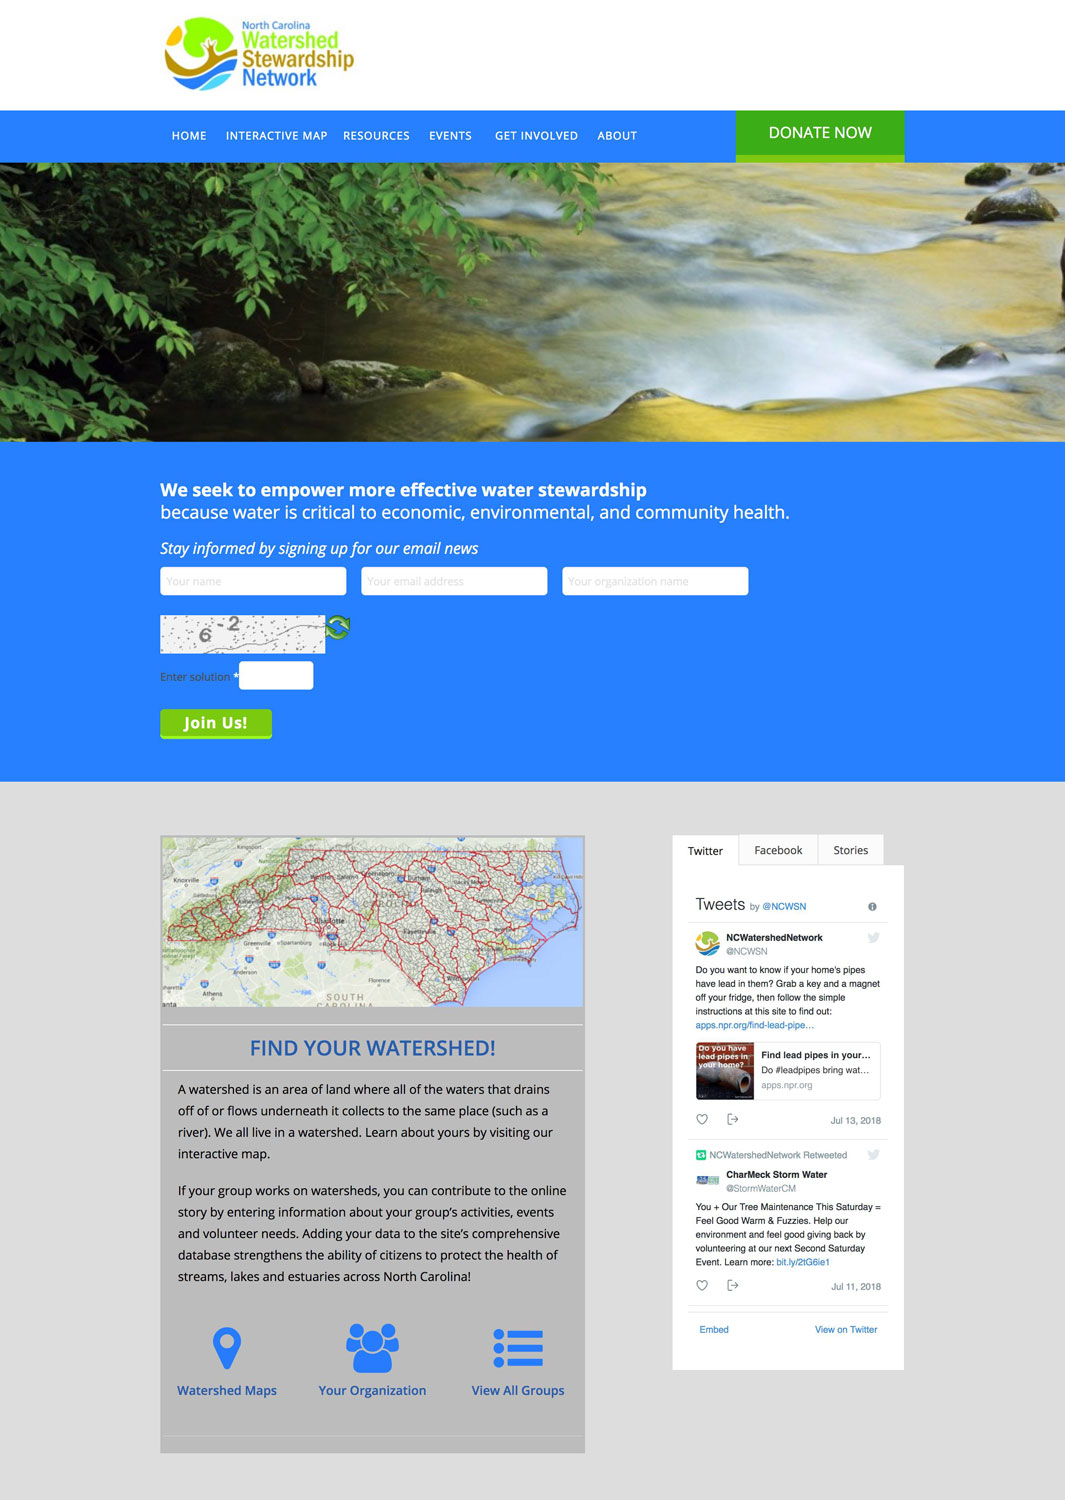 NC Watershed Stewardship Network Website